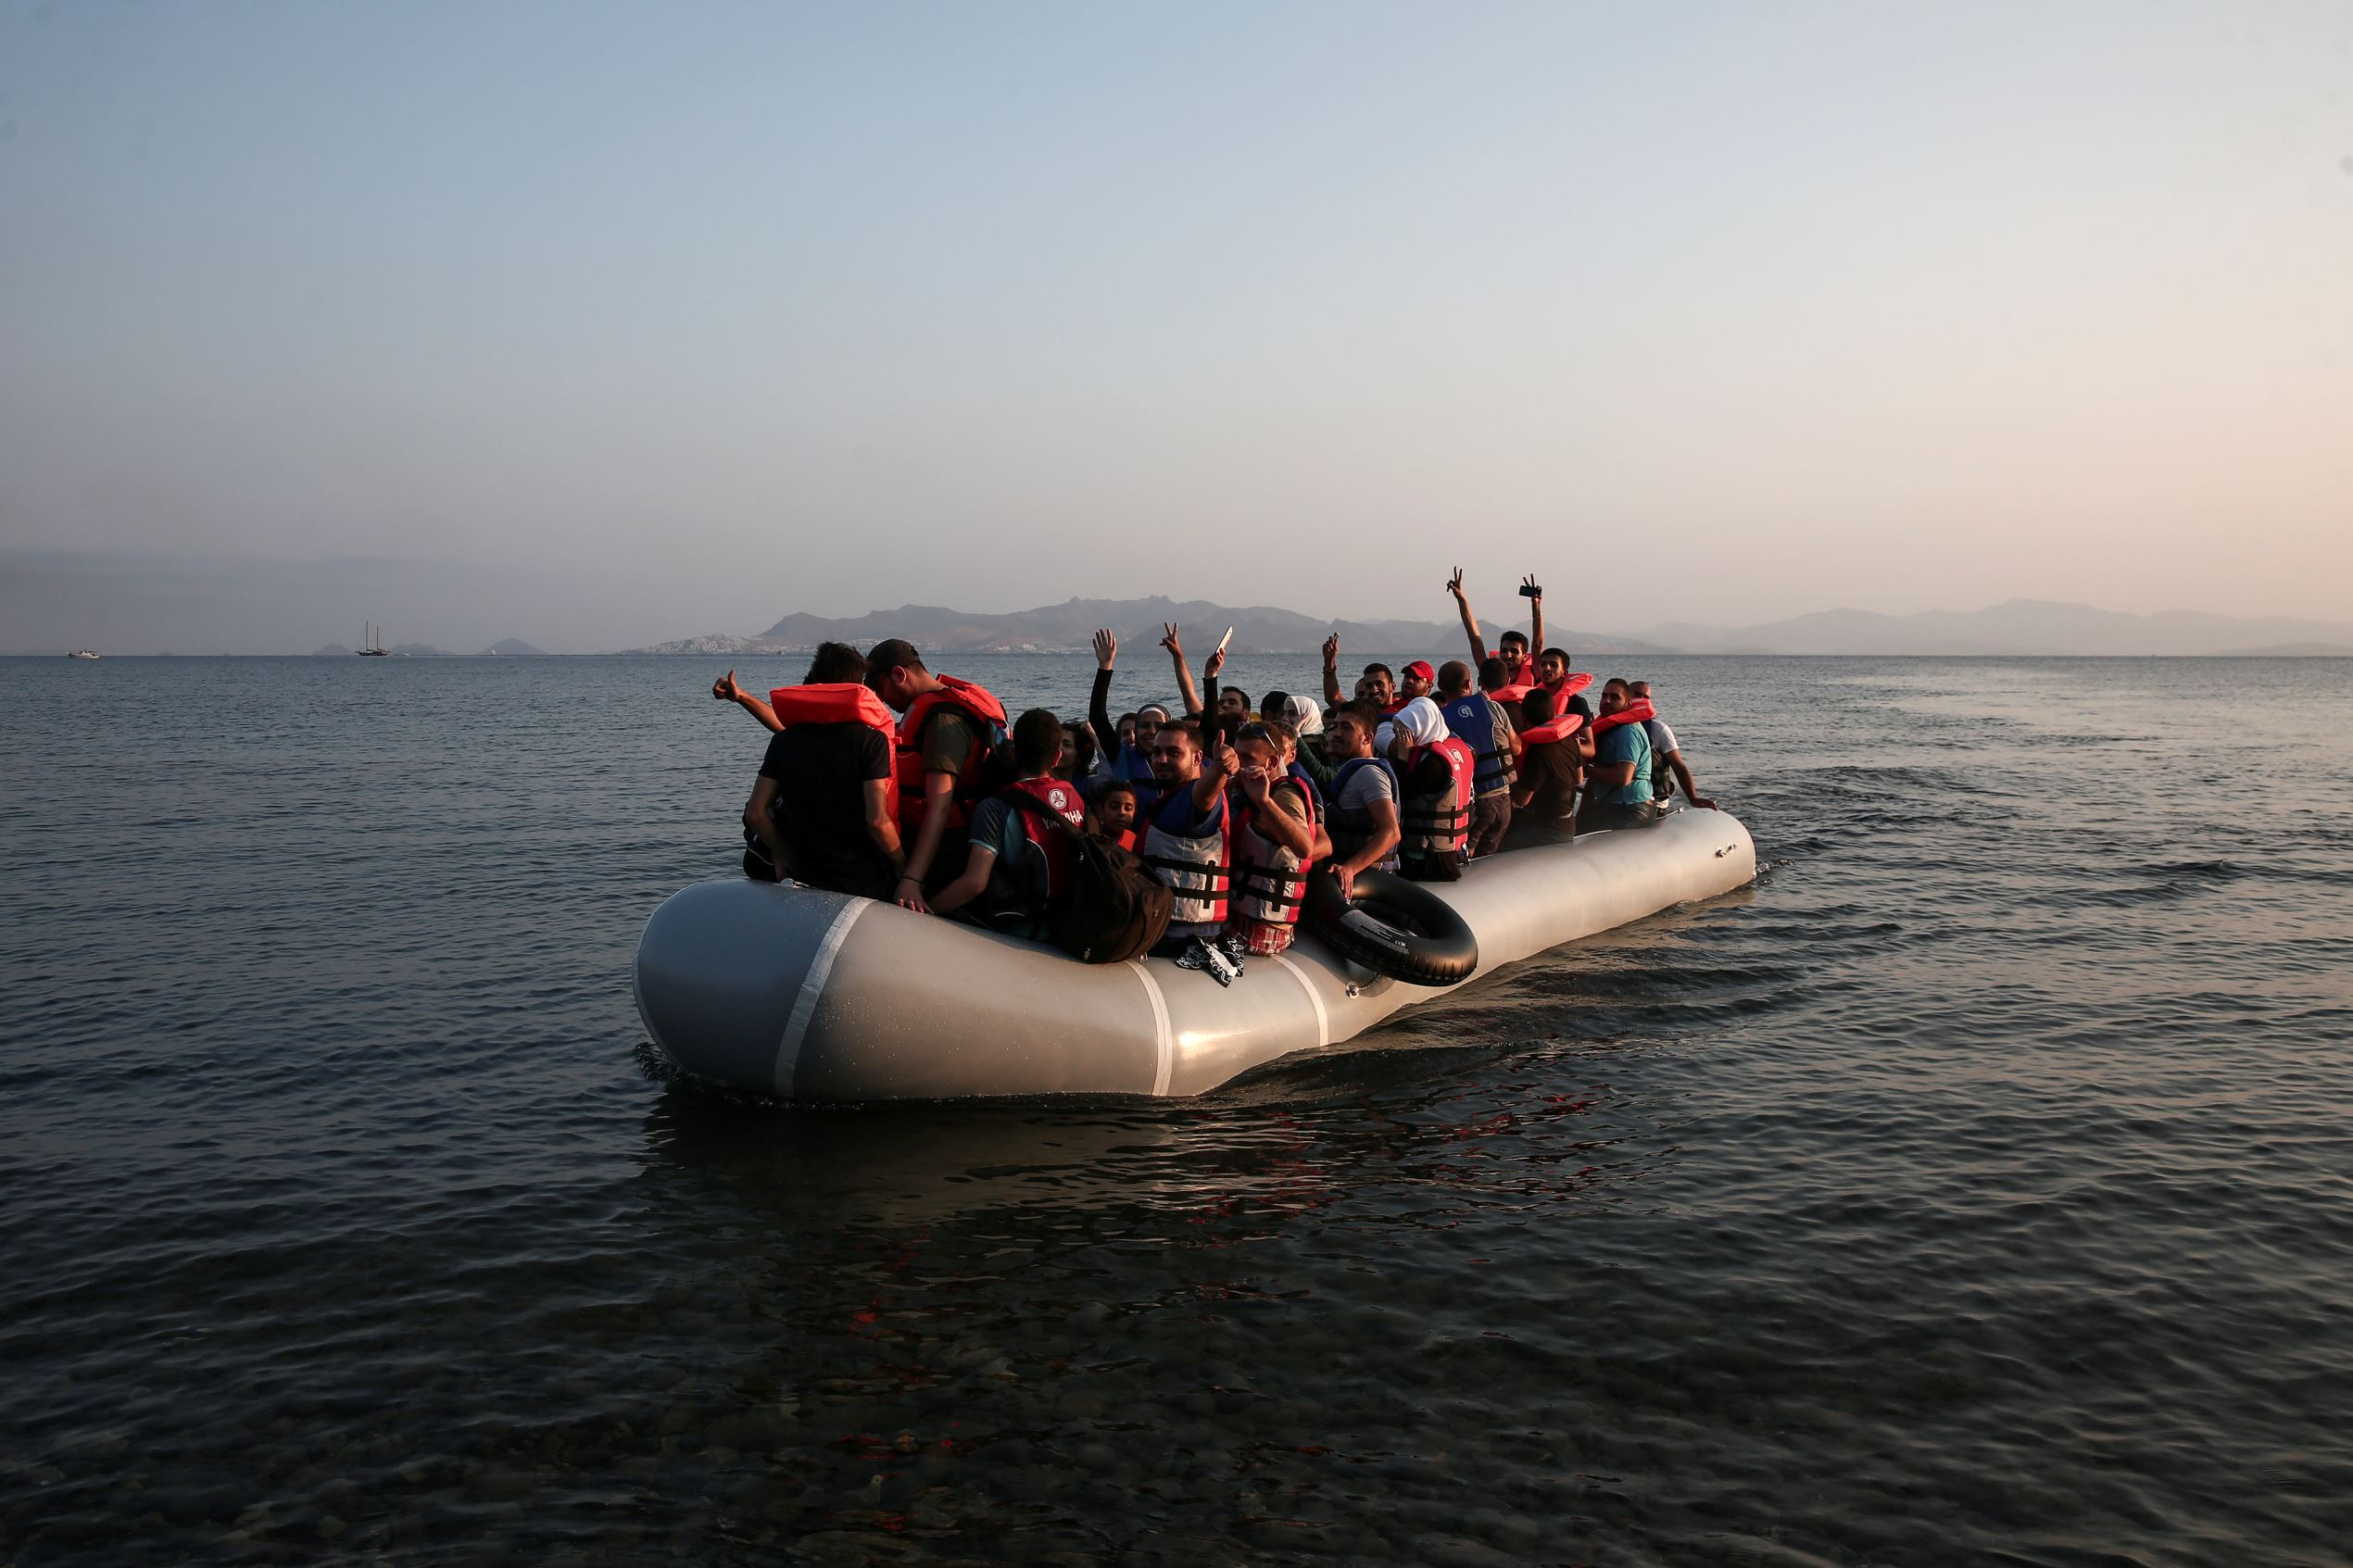 Migrants arrive at the coast on a dinghy after crossing from Turkey, at the southeastern island of Kos, Greece, Tuesday, Aug. 11, 2015. Fights broke out among migrants on the Greek island of Kos Tuesday, where overwhelmed authorities are struggling to contain increasing numbers of people arriving clandestinely on rubber dinghies from the nearby Turkish shore. (AP Photo/Yorgos Karahalis)